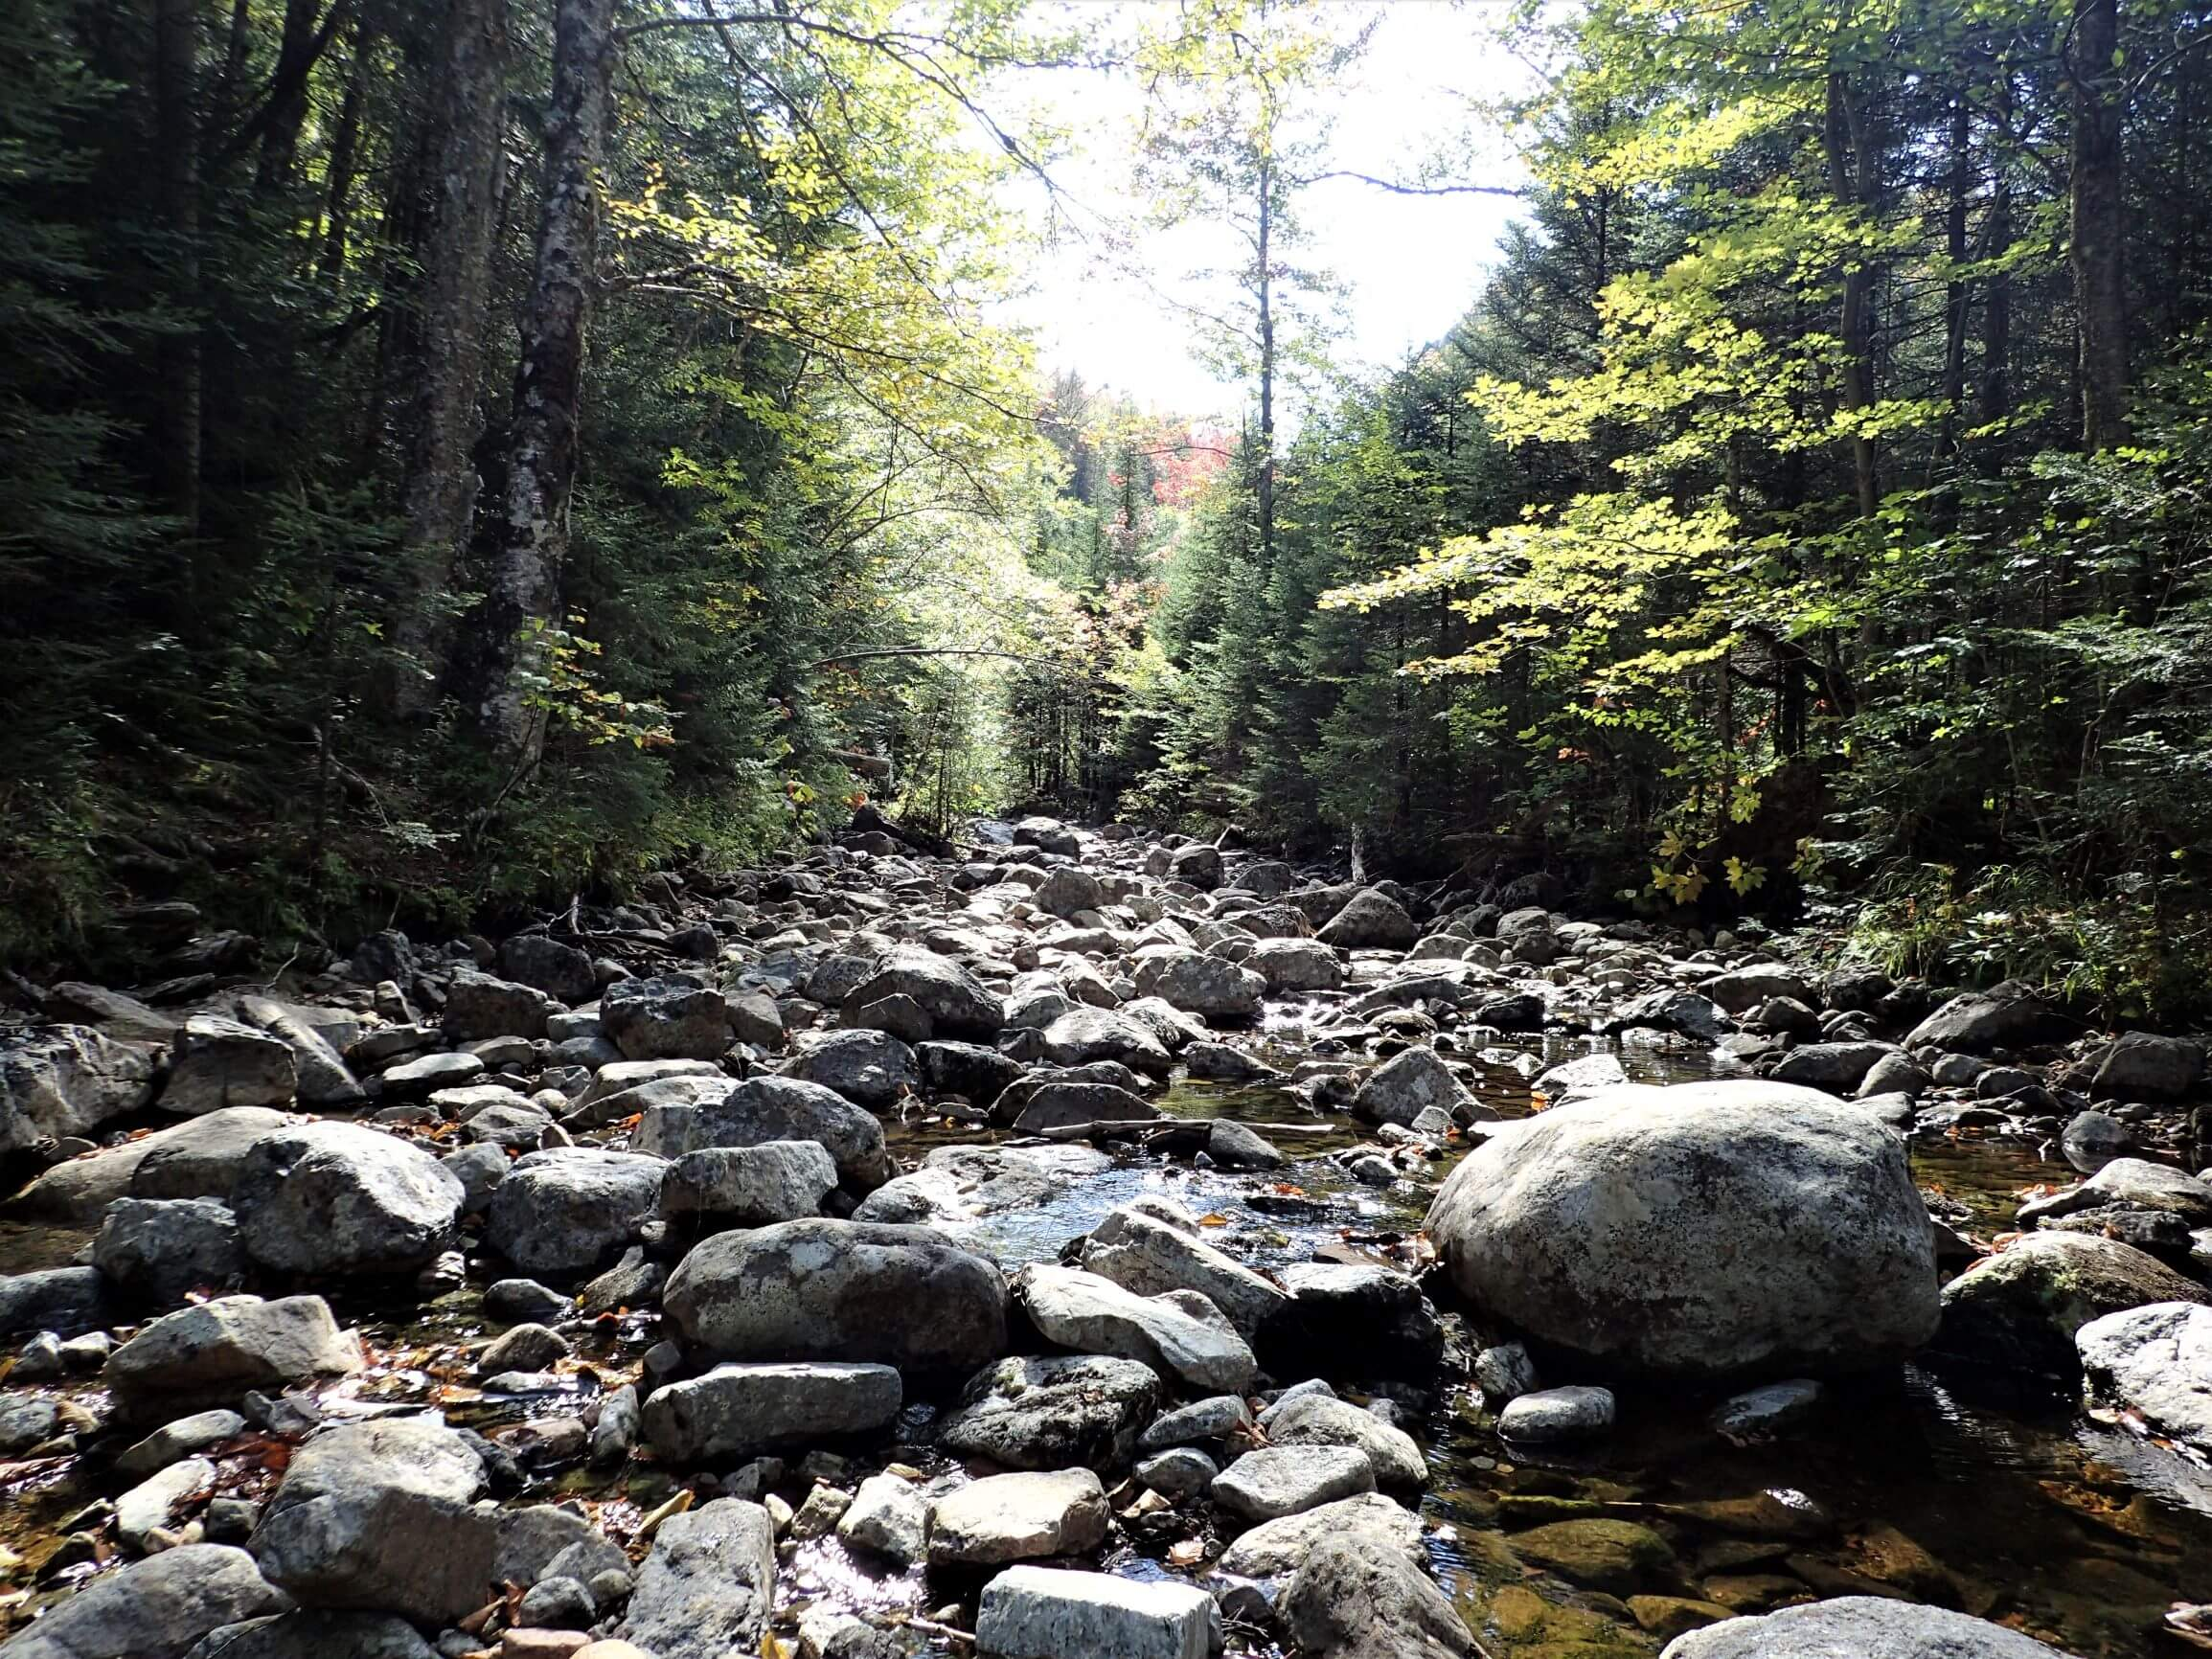 Hiking the Indian Pass Trail in the Adirondacks